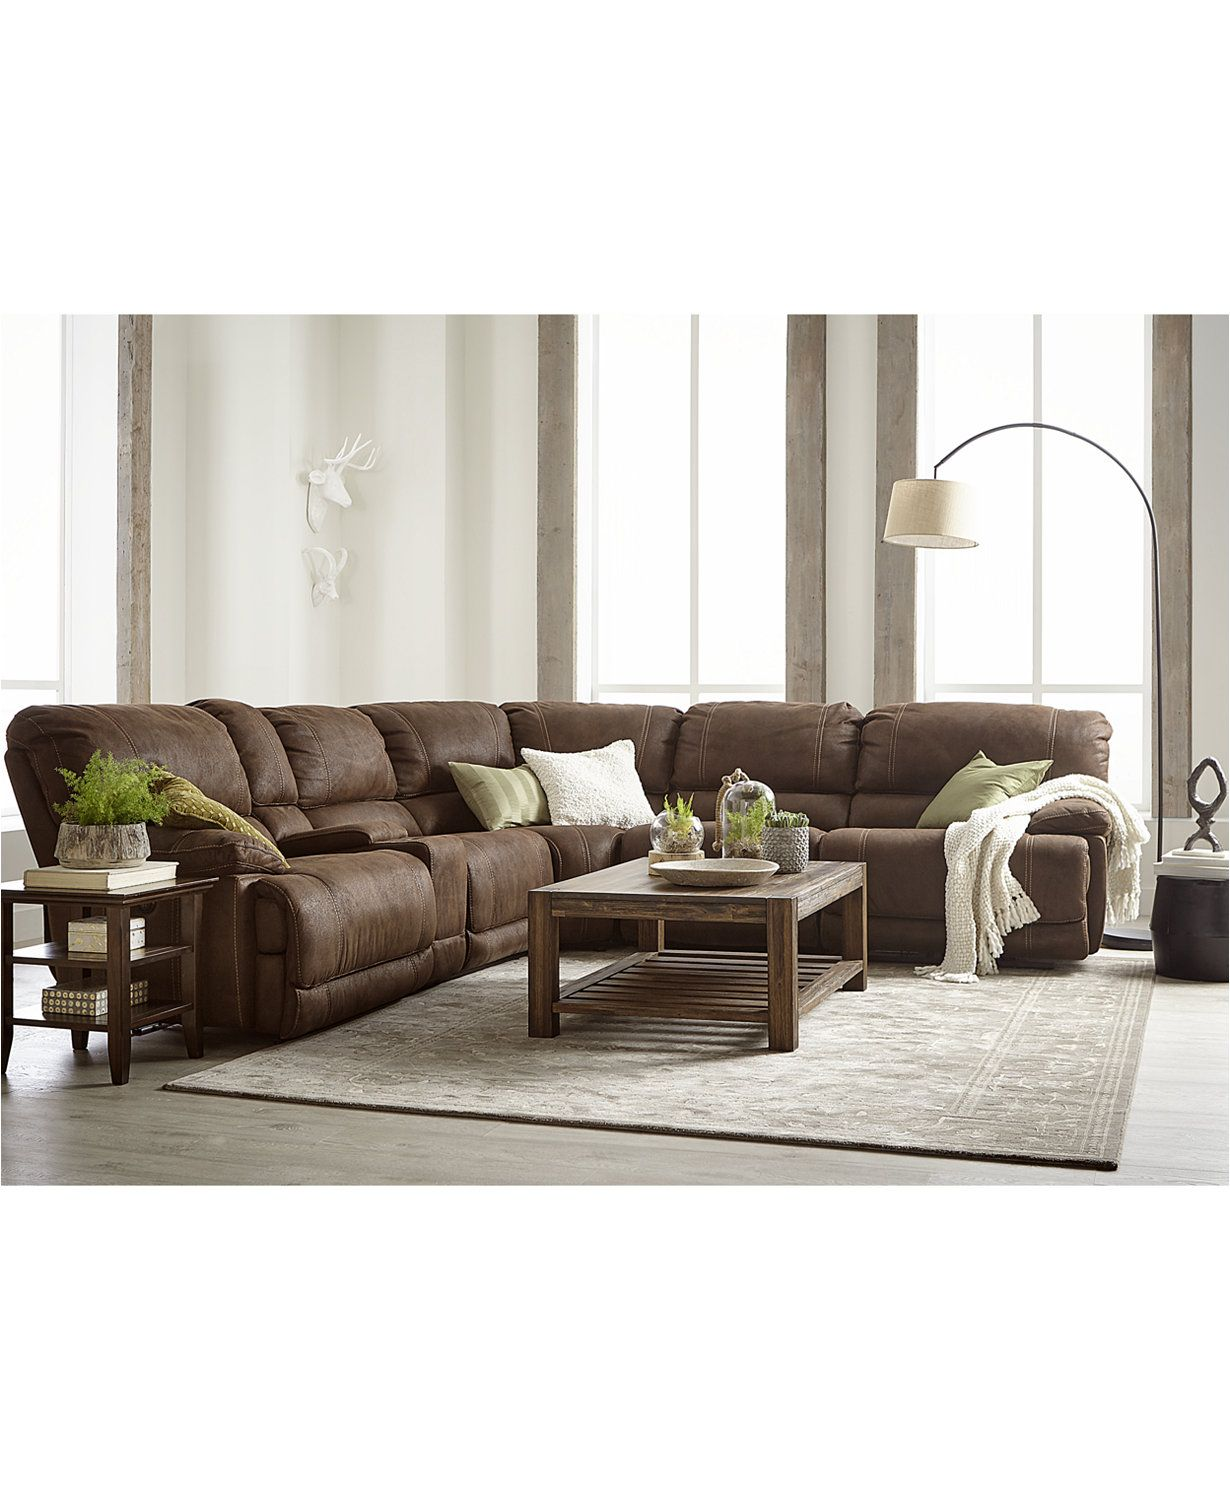 Jedd Fabric Power Reclining Sectional Sofa Collection Macys Com  ~ Fabric Sectional Sofa With Power Recliner